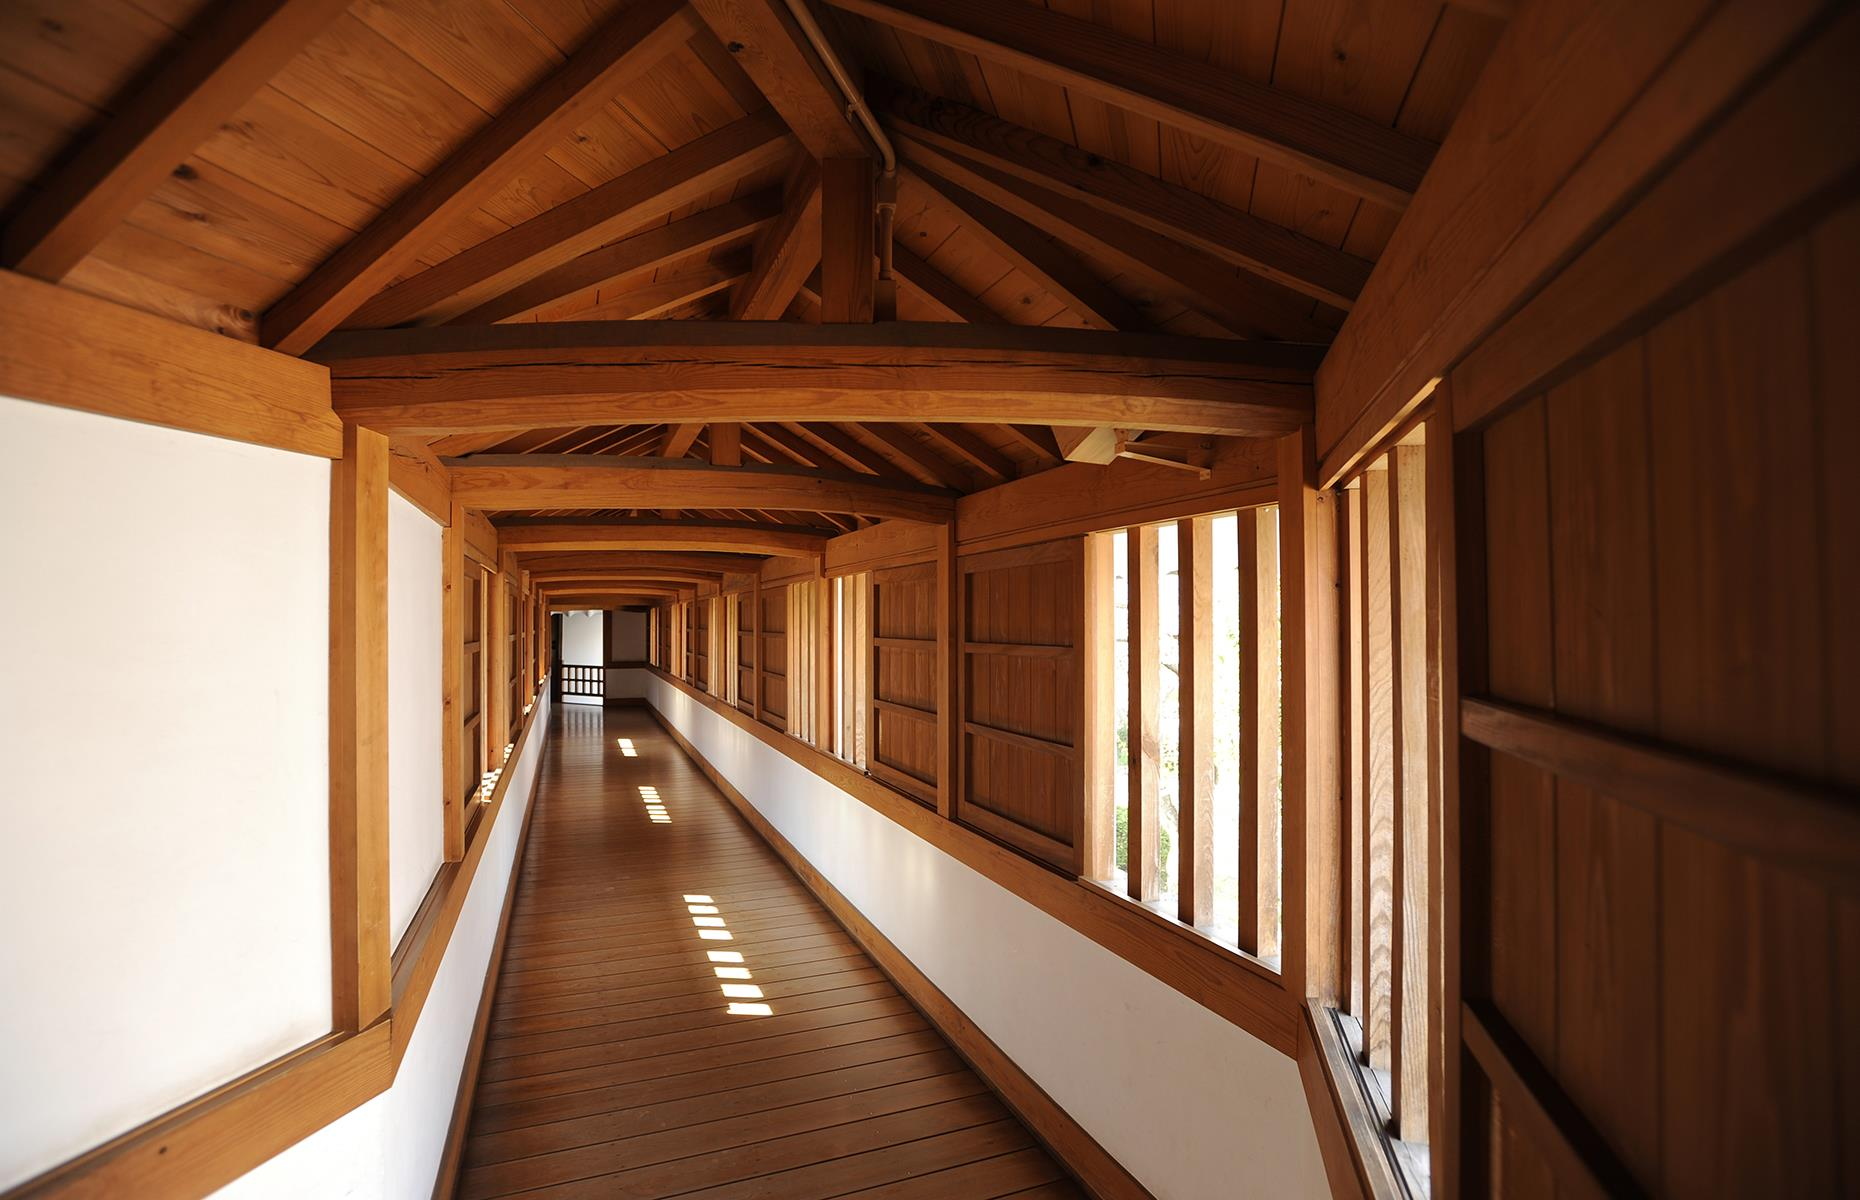 Slide 48 of 53: Himeji also miraculously escaped damage during bombing in the Second World War and the Great Hanshin earthquake in 1995. Inside the castle's interior is plain with little decoration, however, looks can be deceptive. Many of the castle's walkways turn back on themselves to confuse invaders and even today's visitors can end up bamboozled.